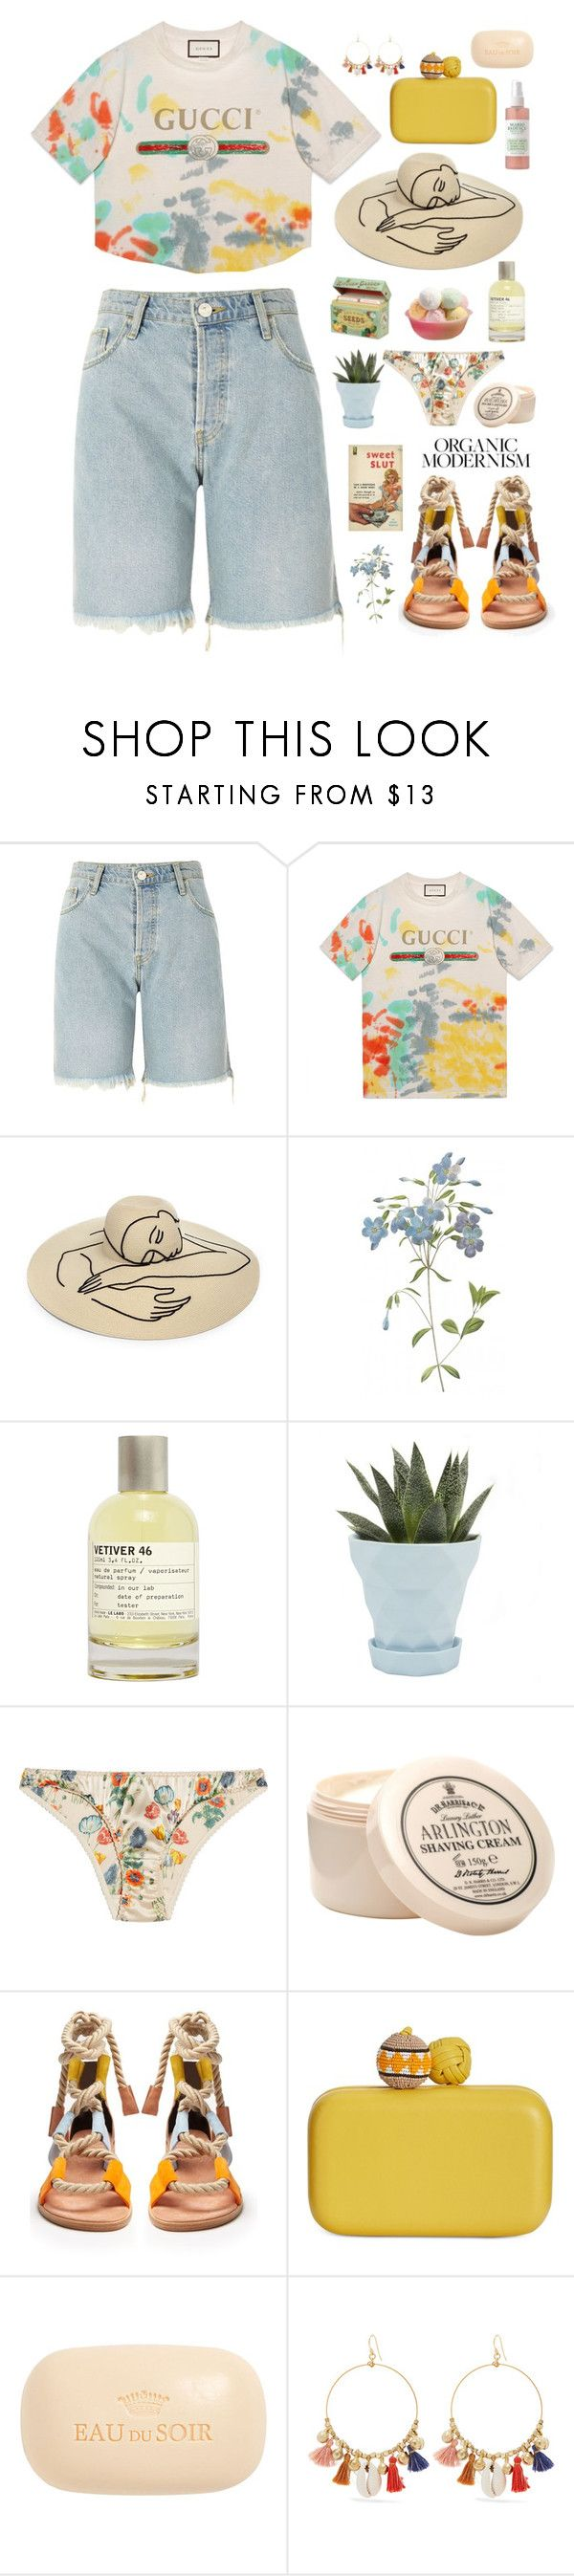 """""""Girls, don't forget your curls And all of your corsets"""" by ginny-mckenzie ❤ liked on Polyvore featuring River Island, Gucci, Eugenia Kim, Le Labo, Chive, STELLA McCARTNEY, D.R. Harris & Co Ltd., Pierre Hardy, Sam Edelman and Sisley"""